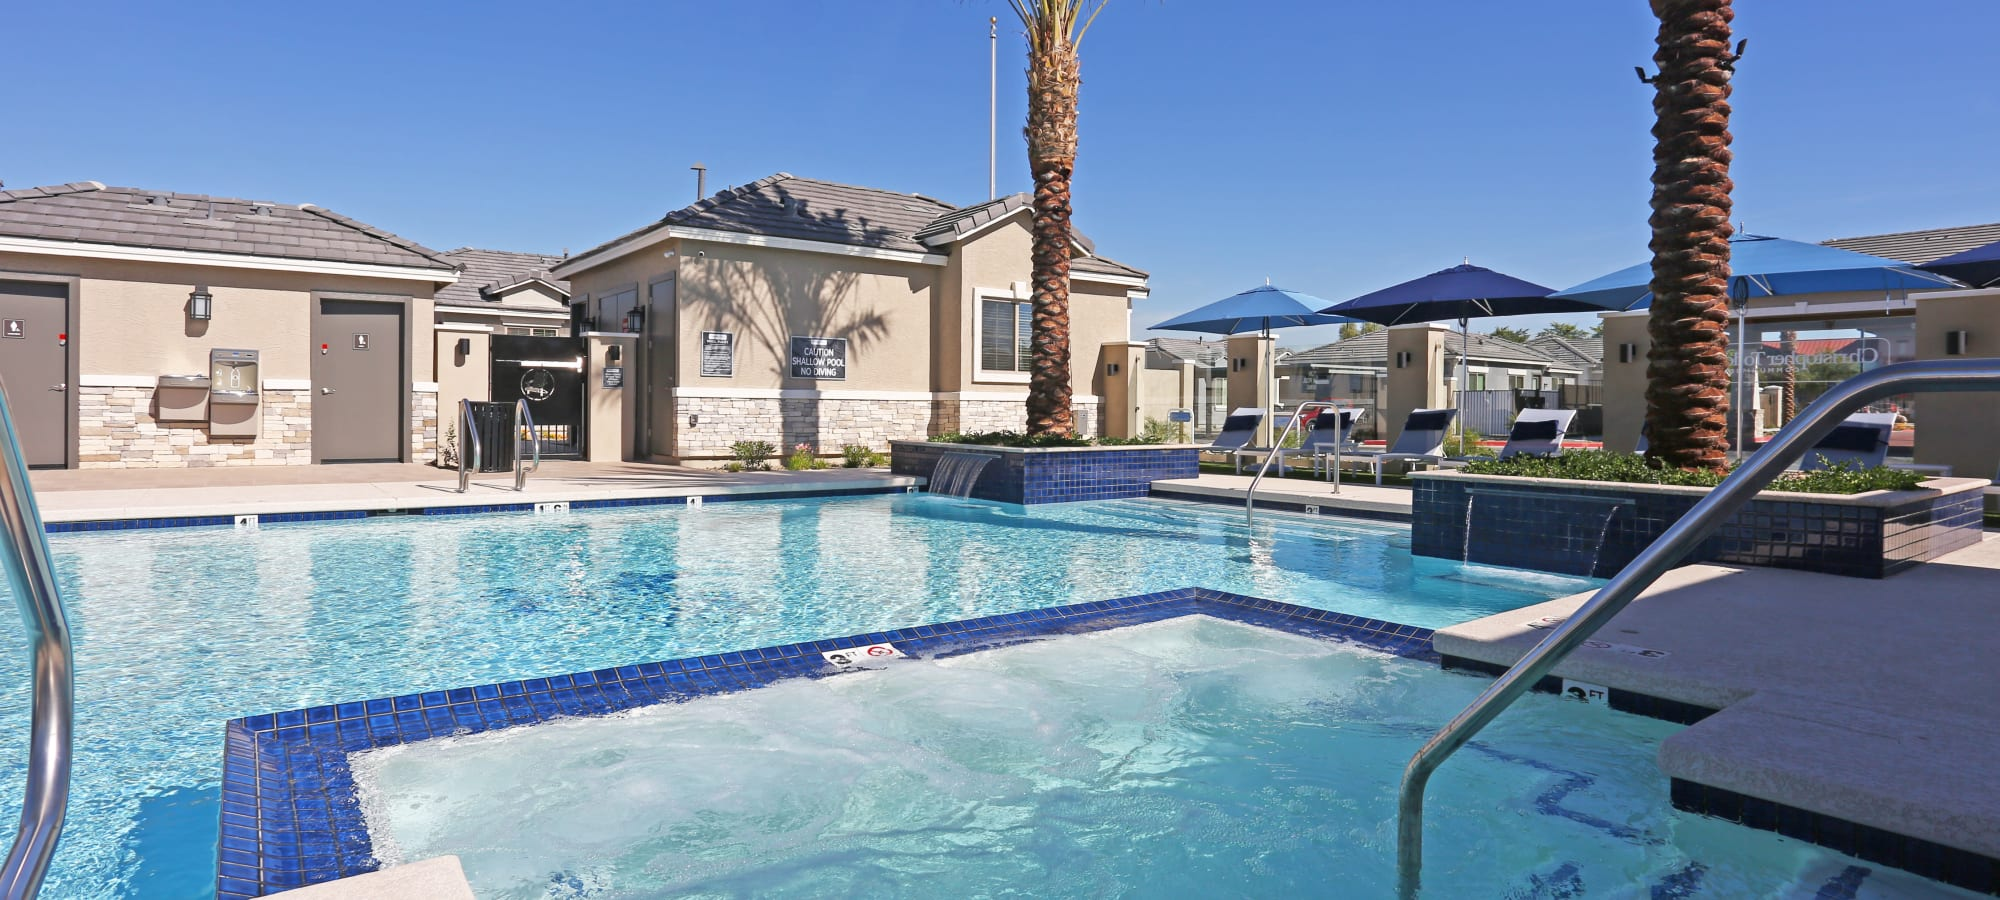 Pool and adjacent spa at Christopher Todd Communities On Mountain View in Surprise, Arizona